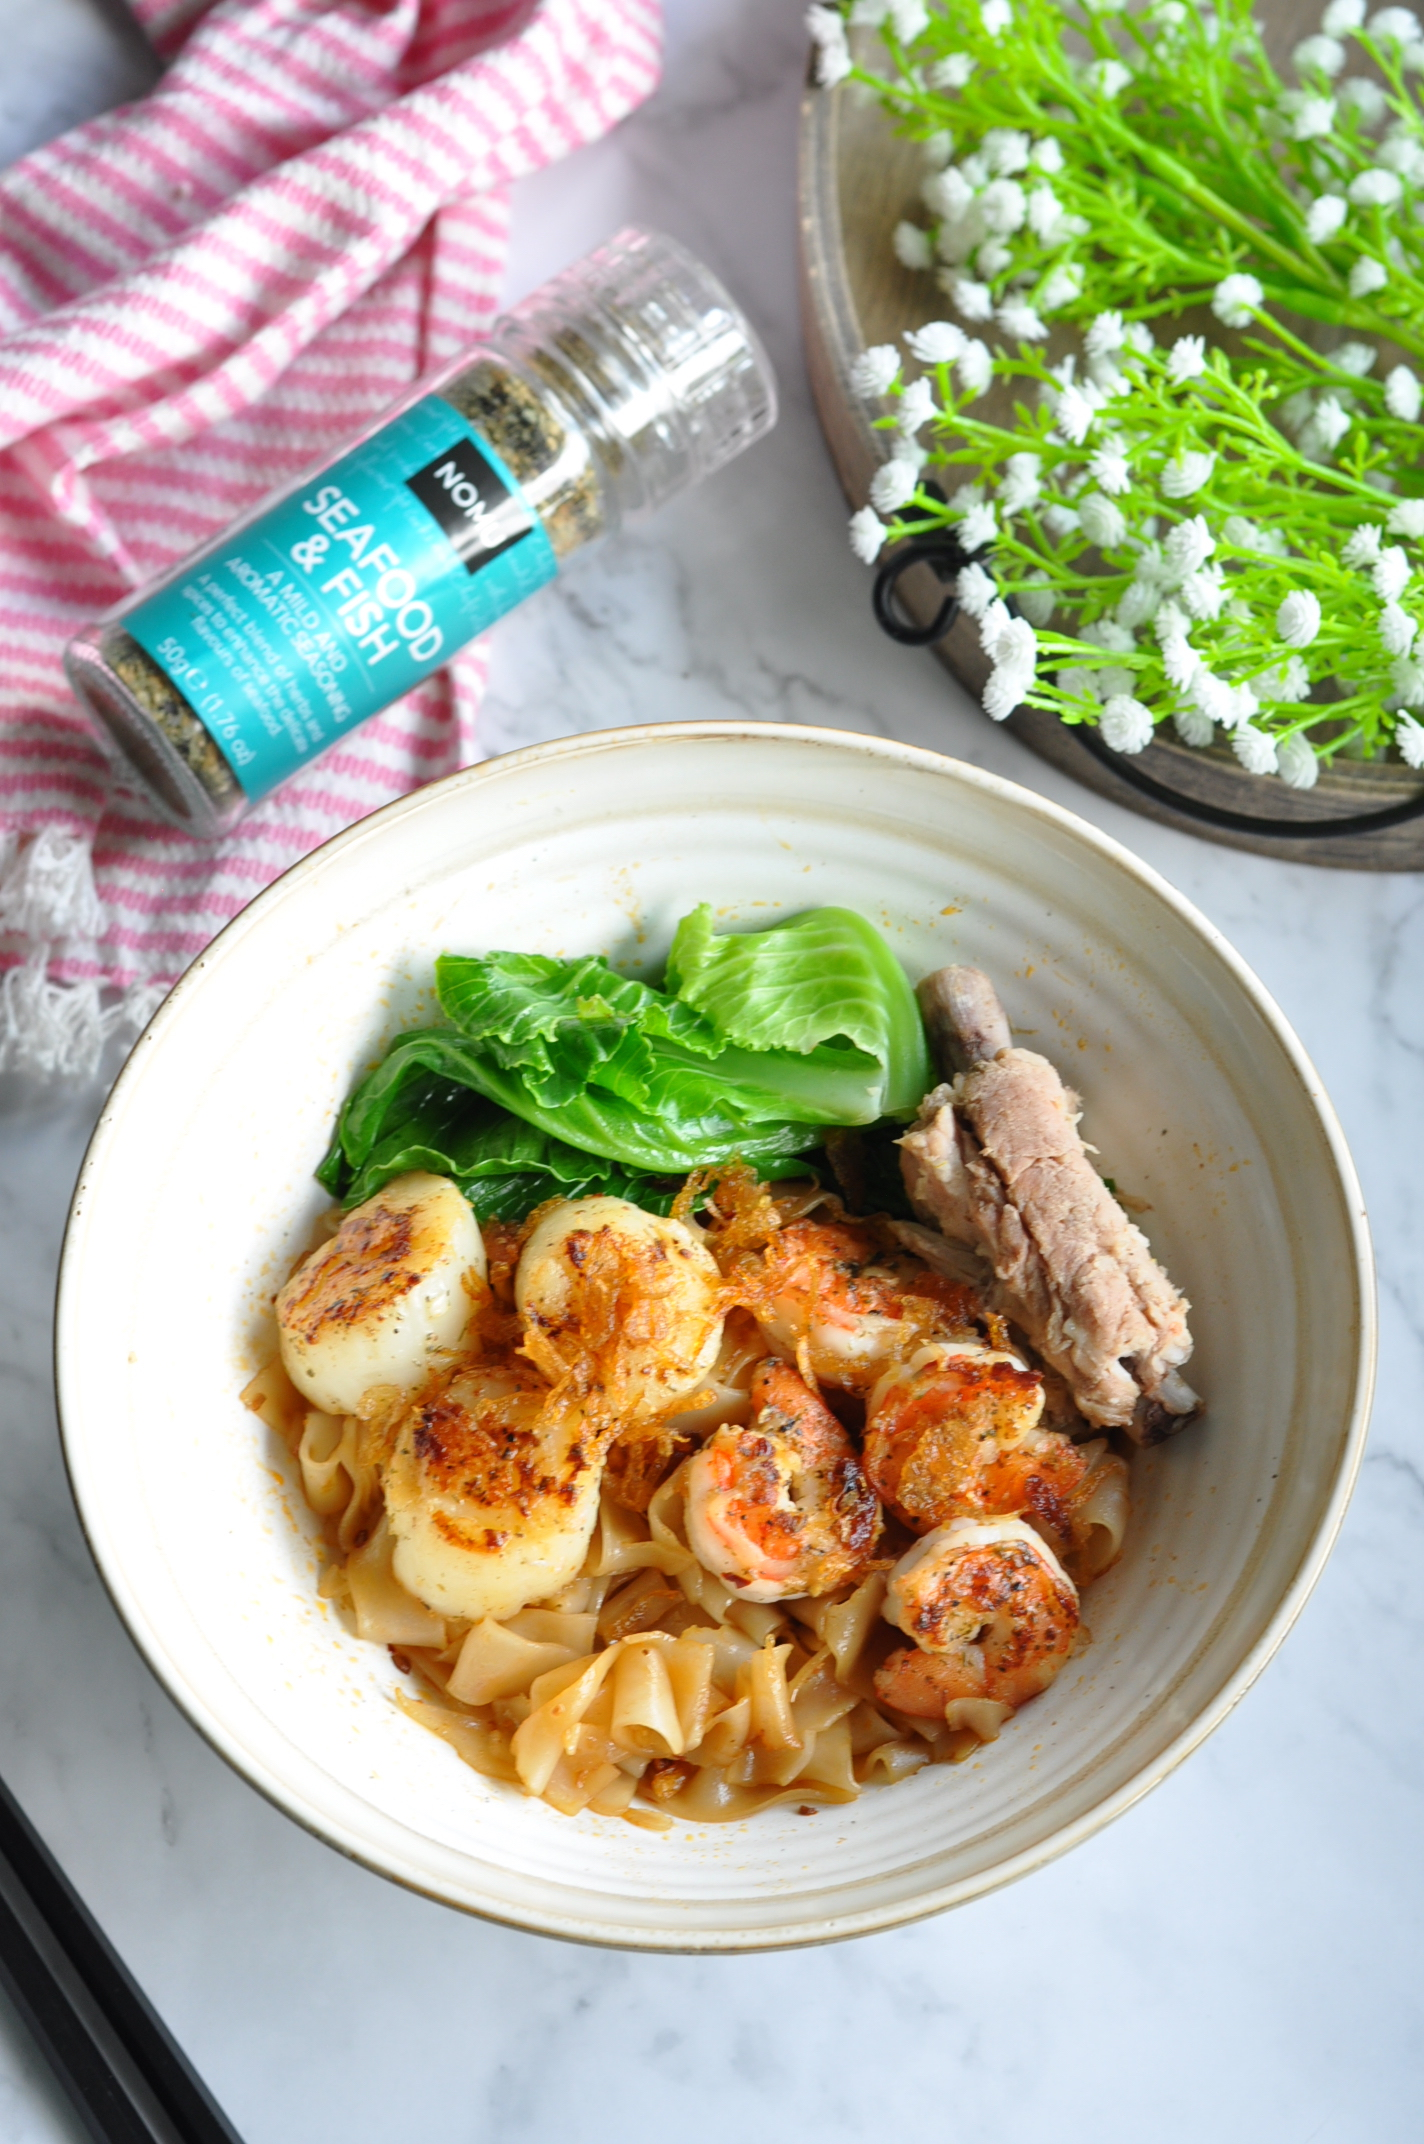 Local style prawn noodles soup with grilled seafood using for Grilled fish seasoning